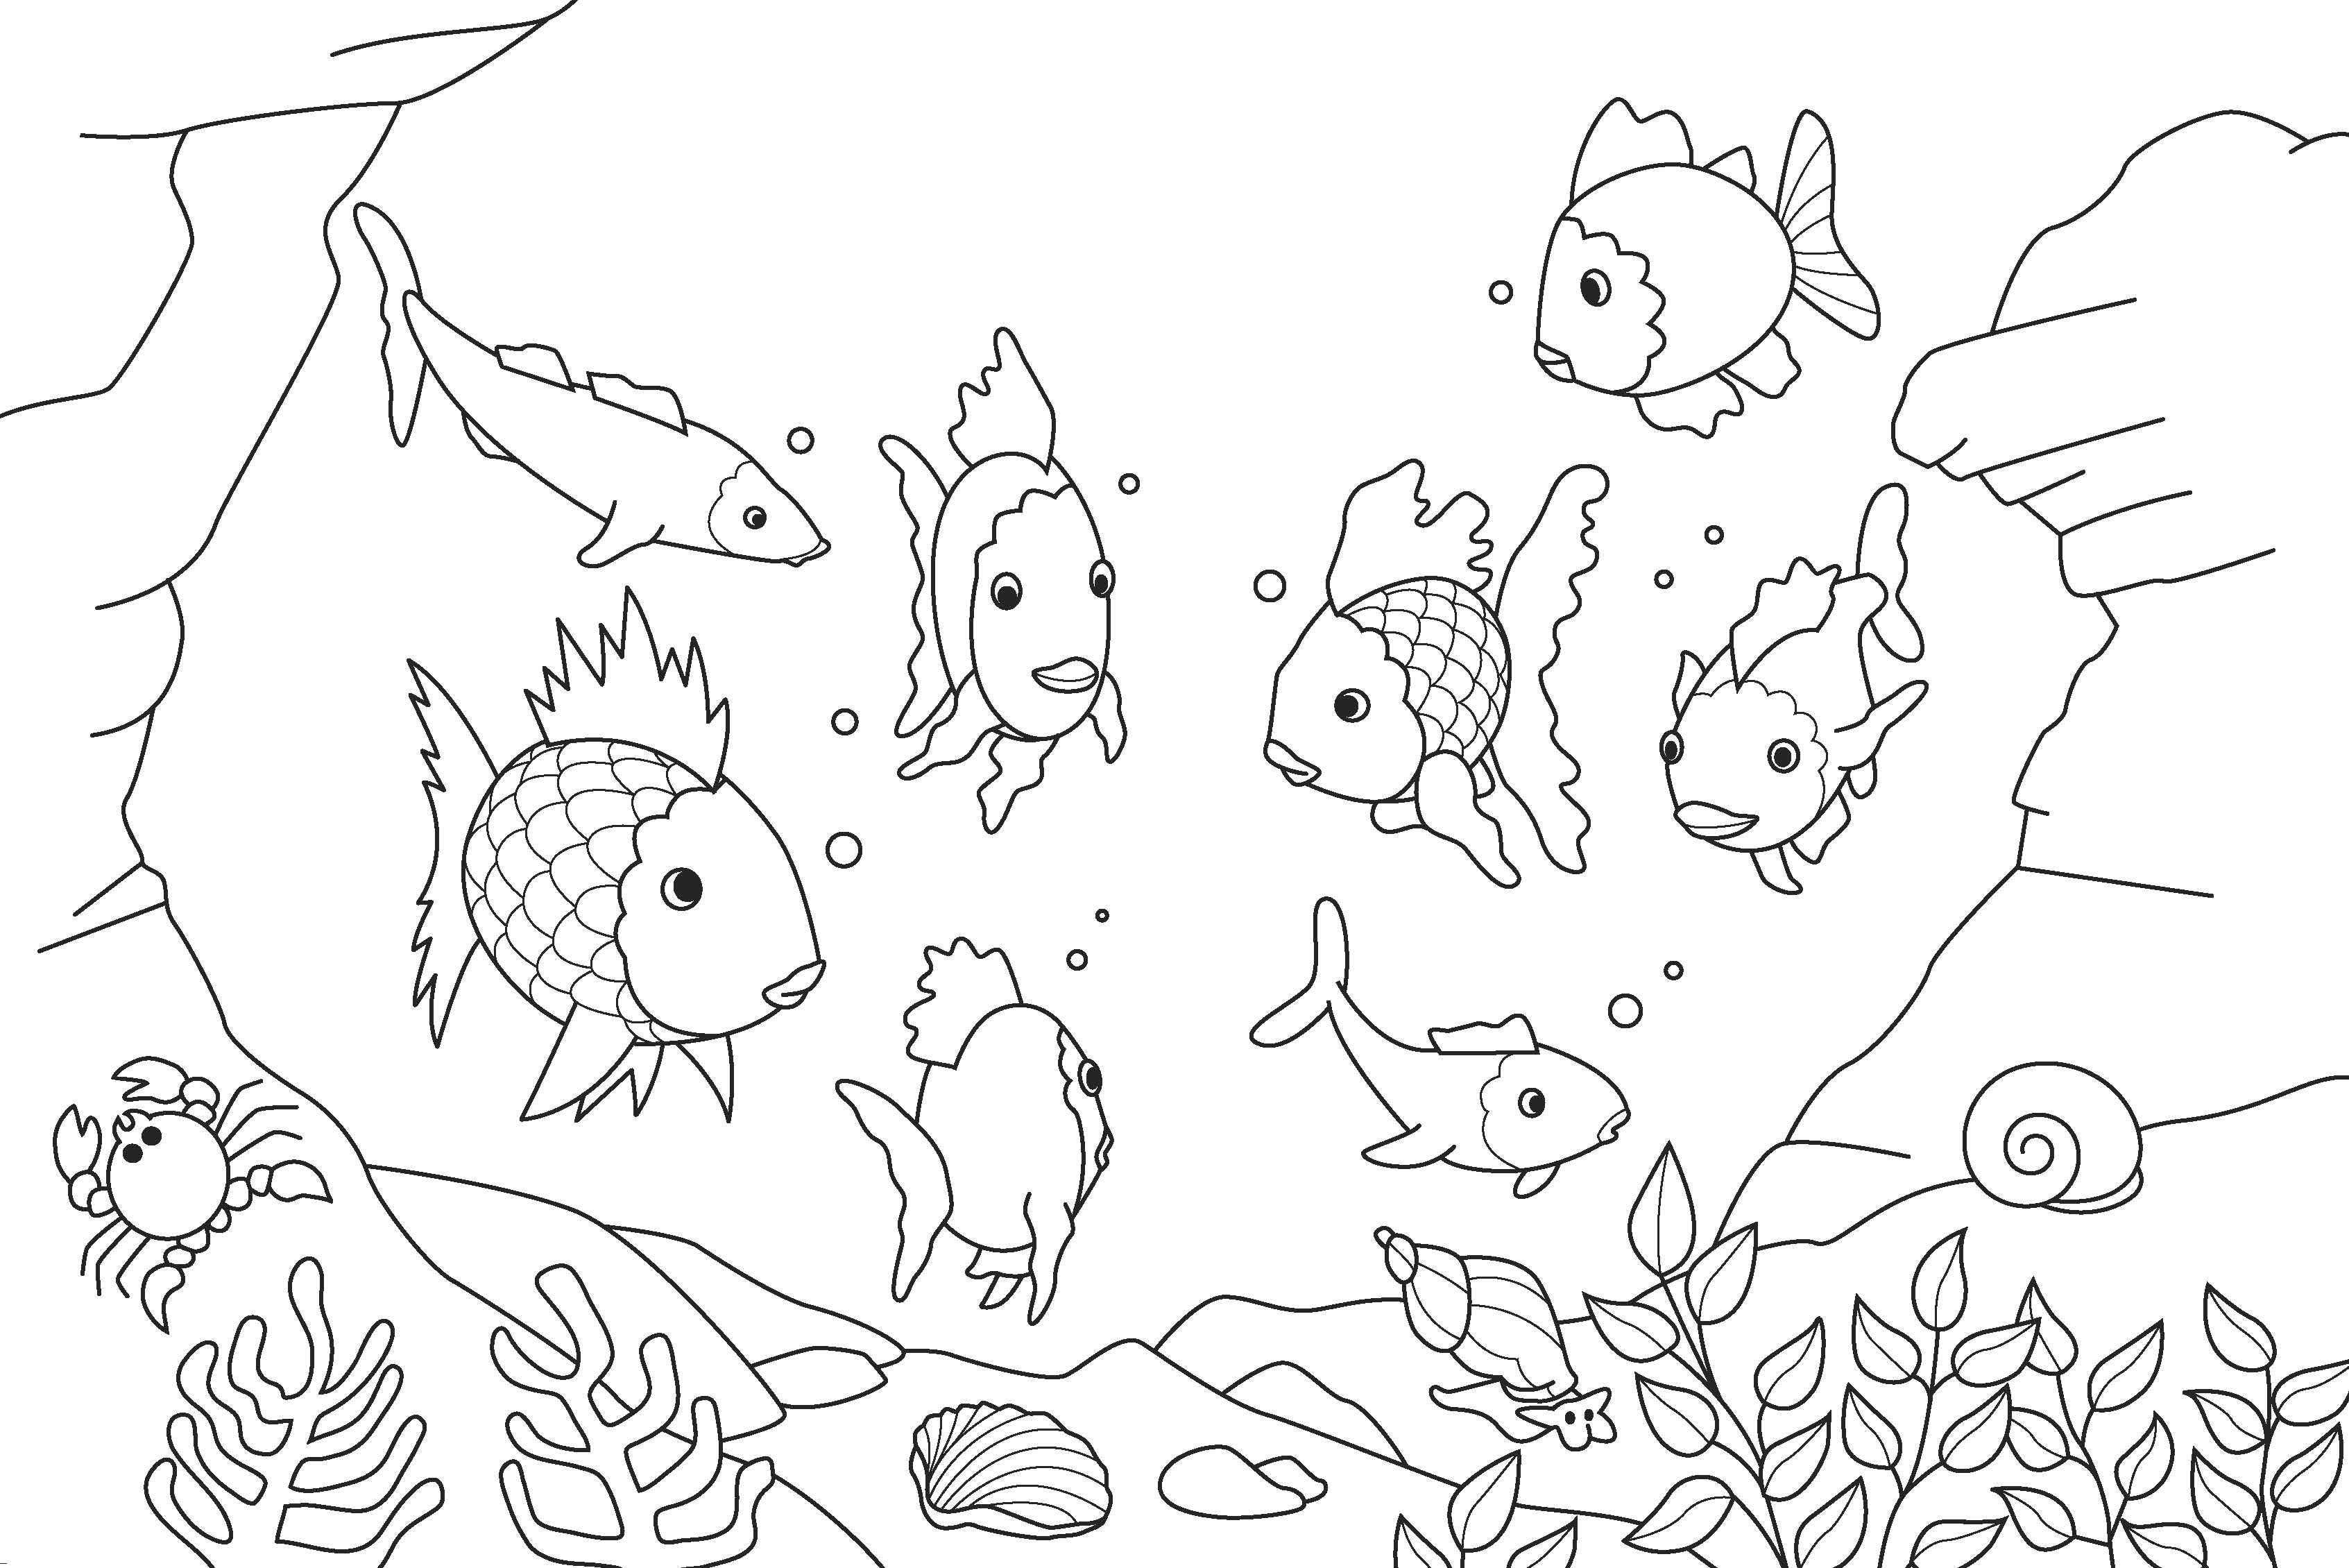 Free Printable Fish Coloring Pages For Kids Ocean Coloring Pages Fish Coloring Page Animal Coloring Pages